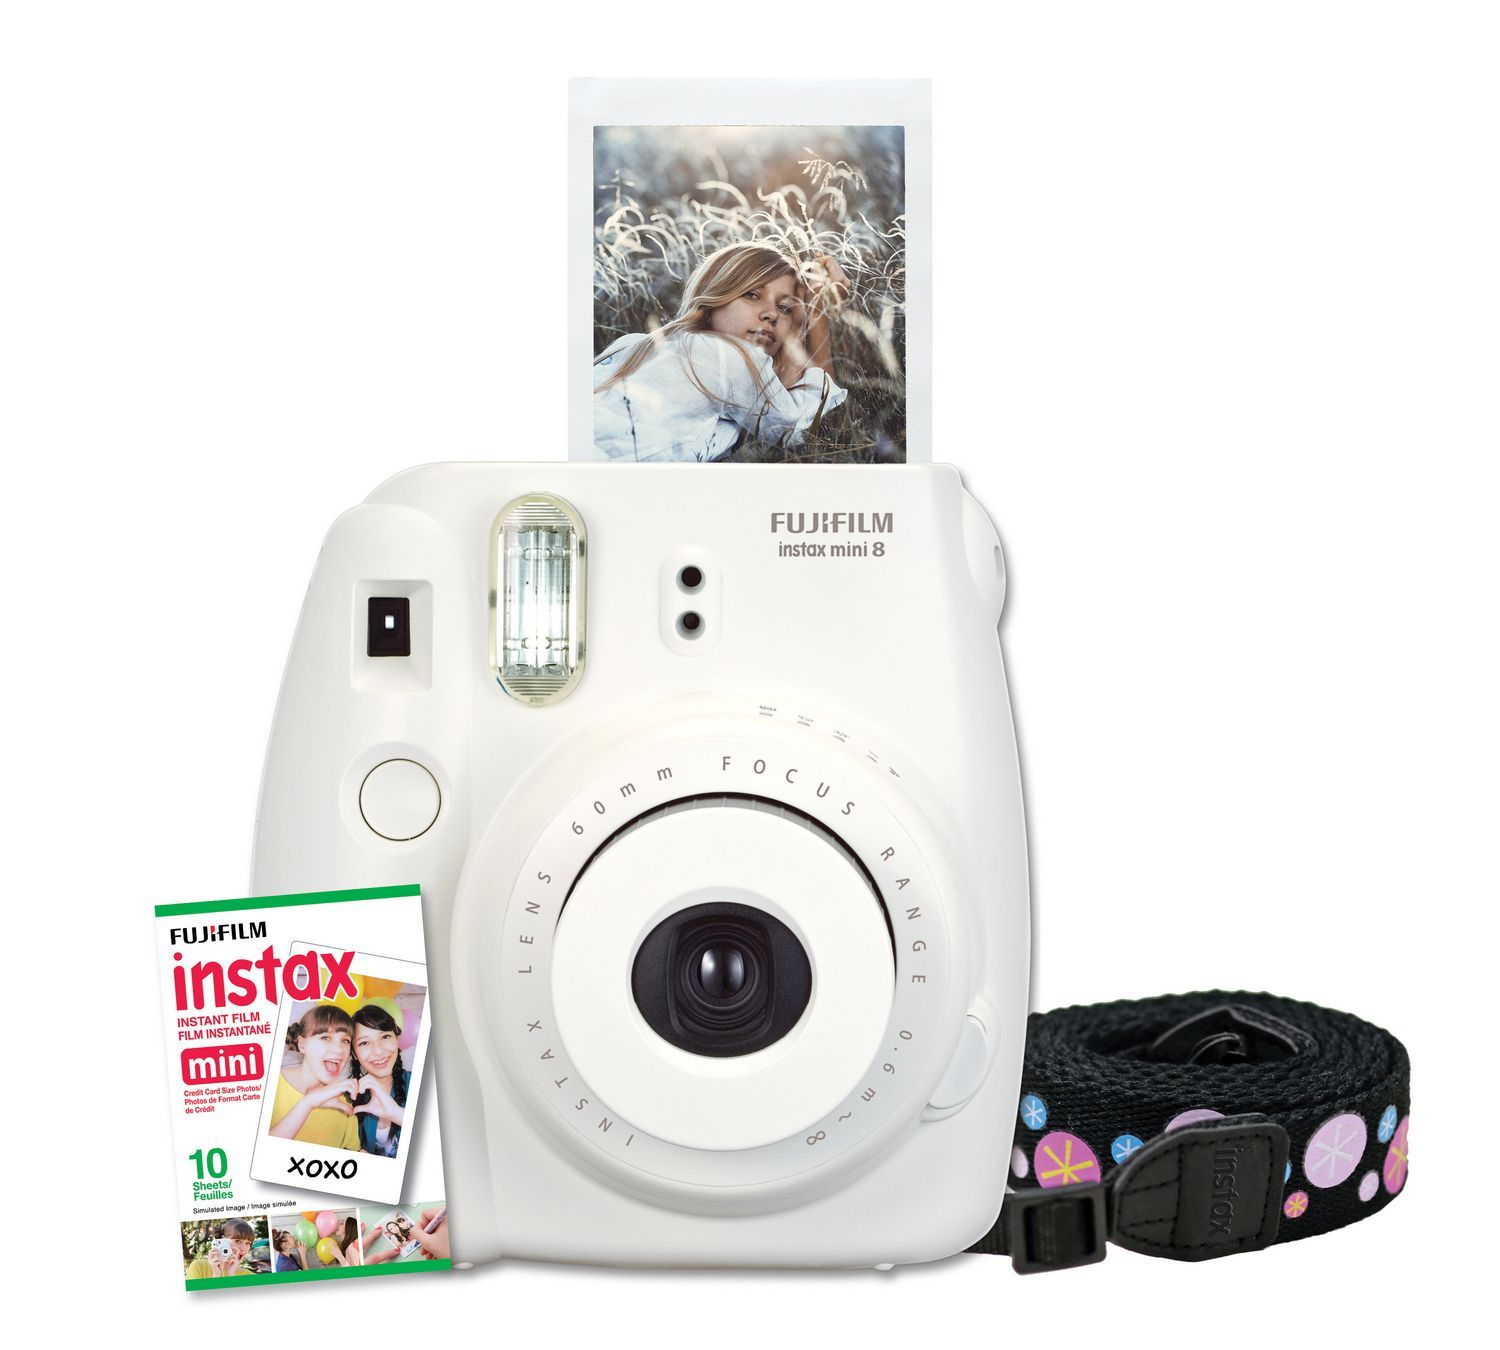 518aa54a6b5b2 Fujifilm Instax Mini 8 Camera With 10 Exposures And Strap